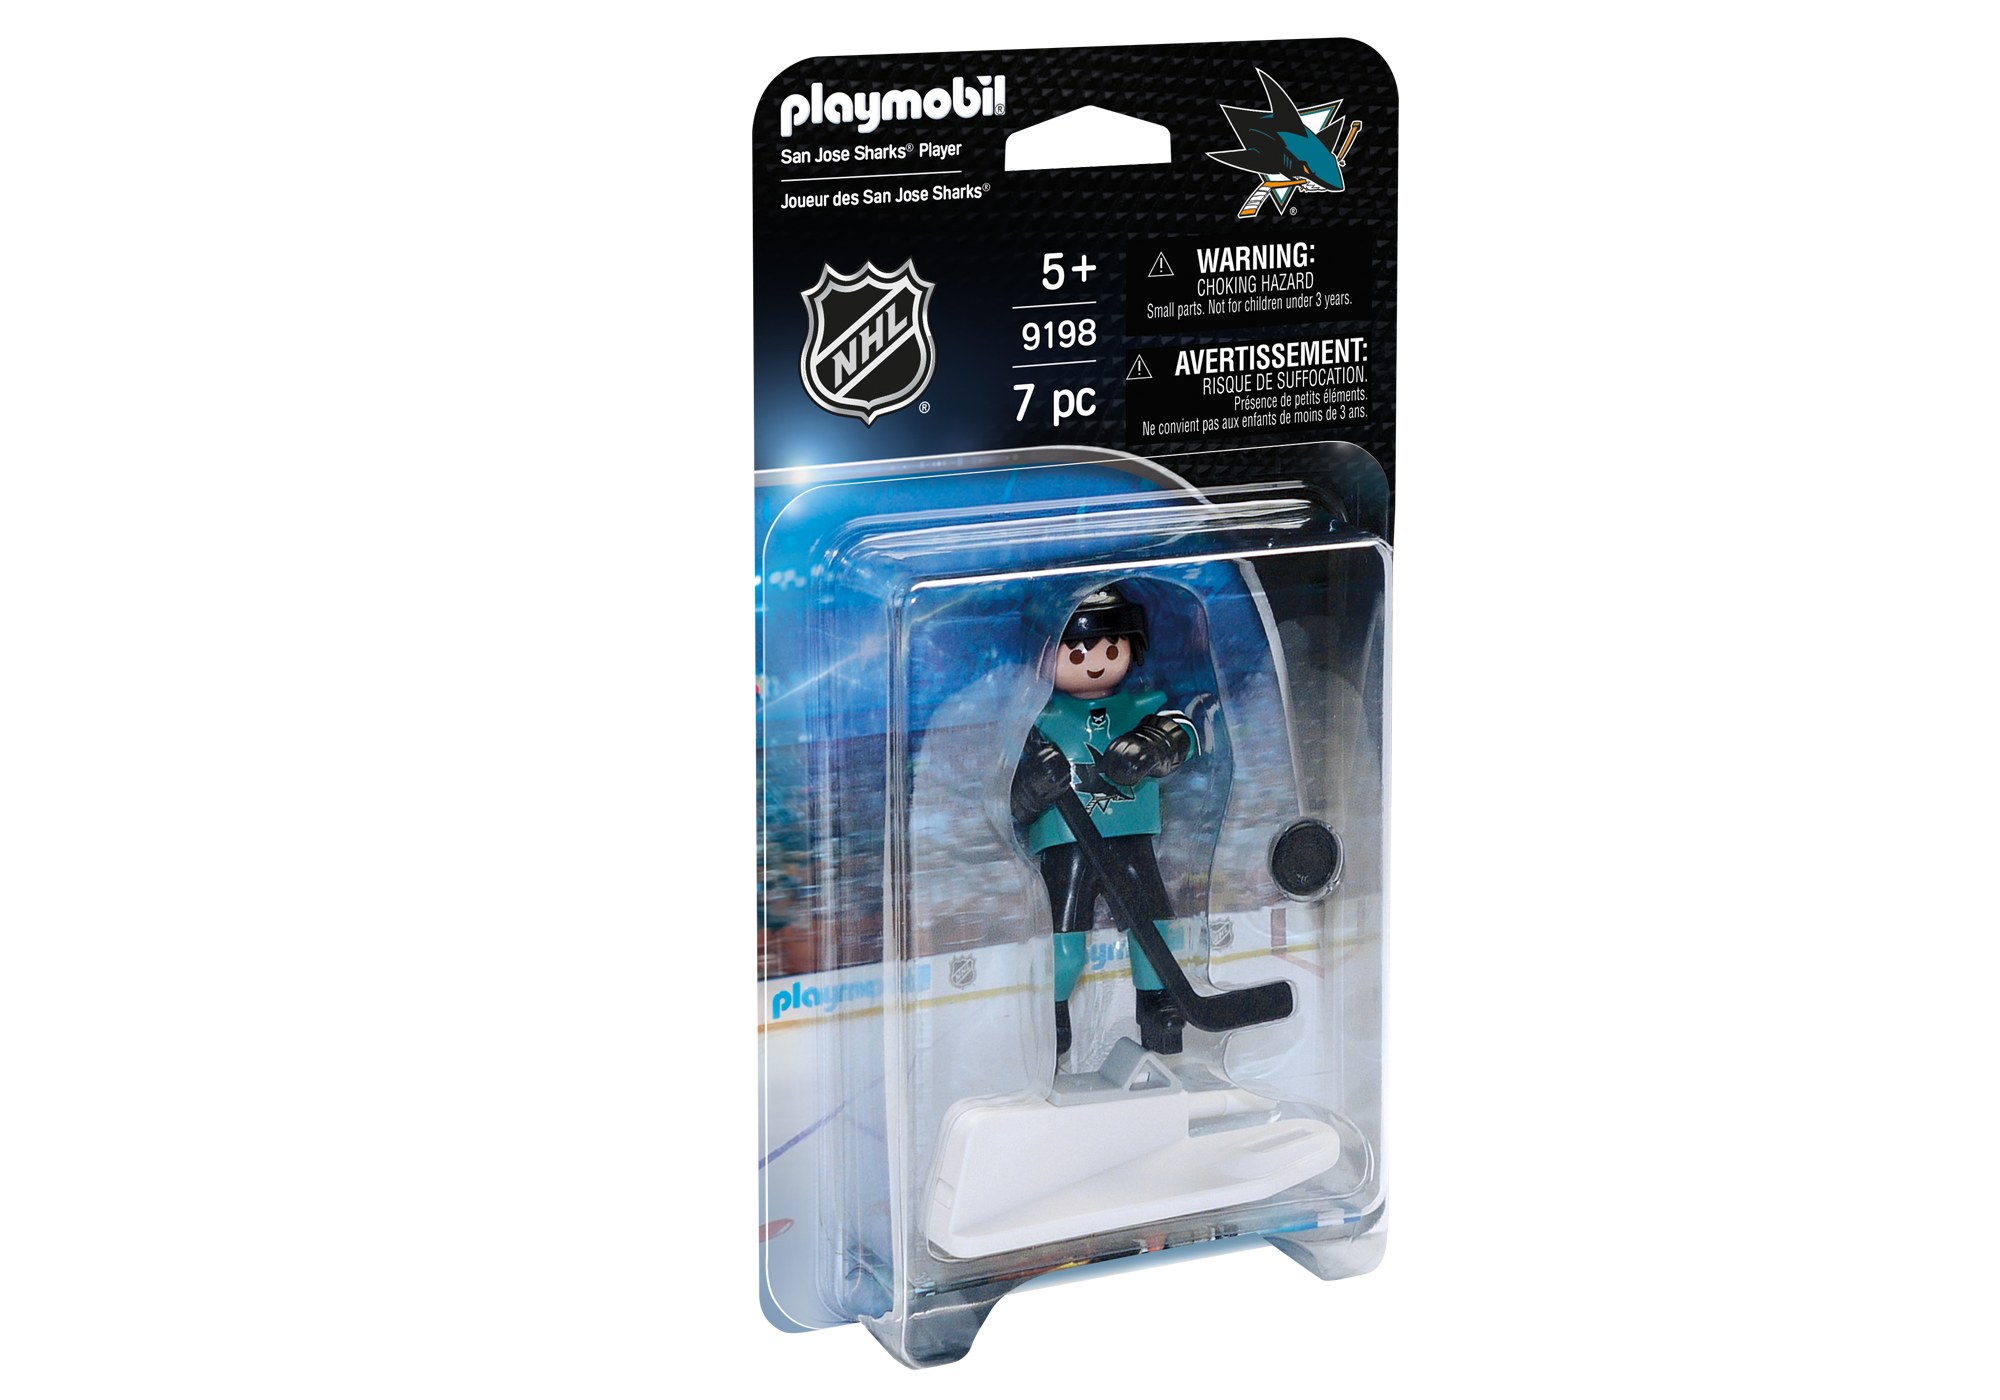 http://media.playmobil.com/i/playmobil/9198_product_box_front